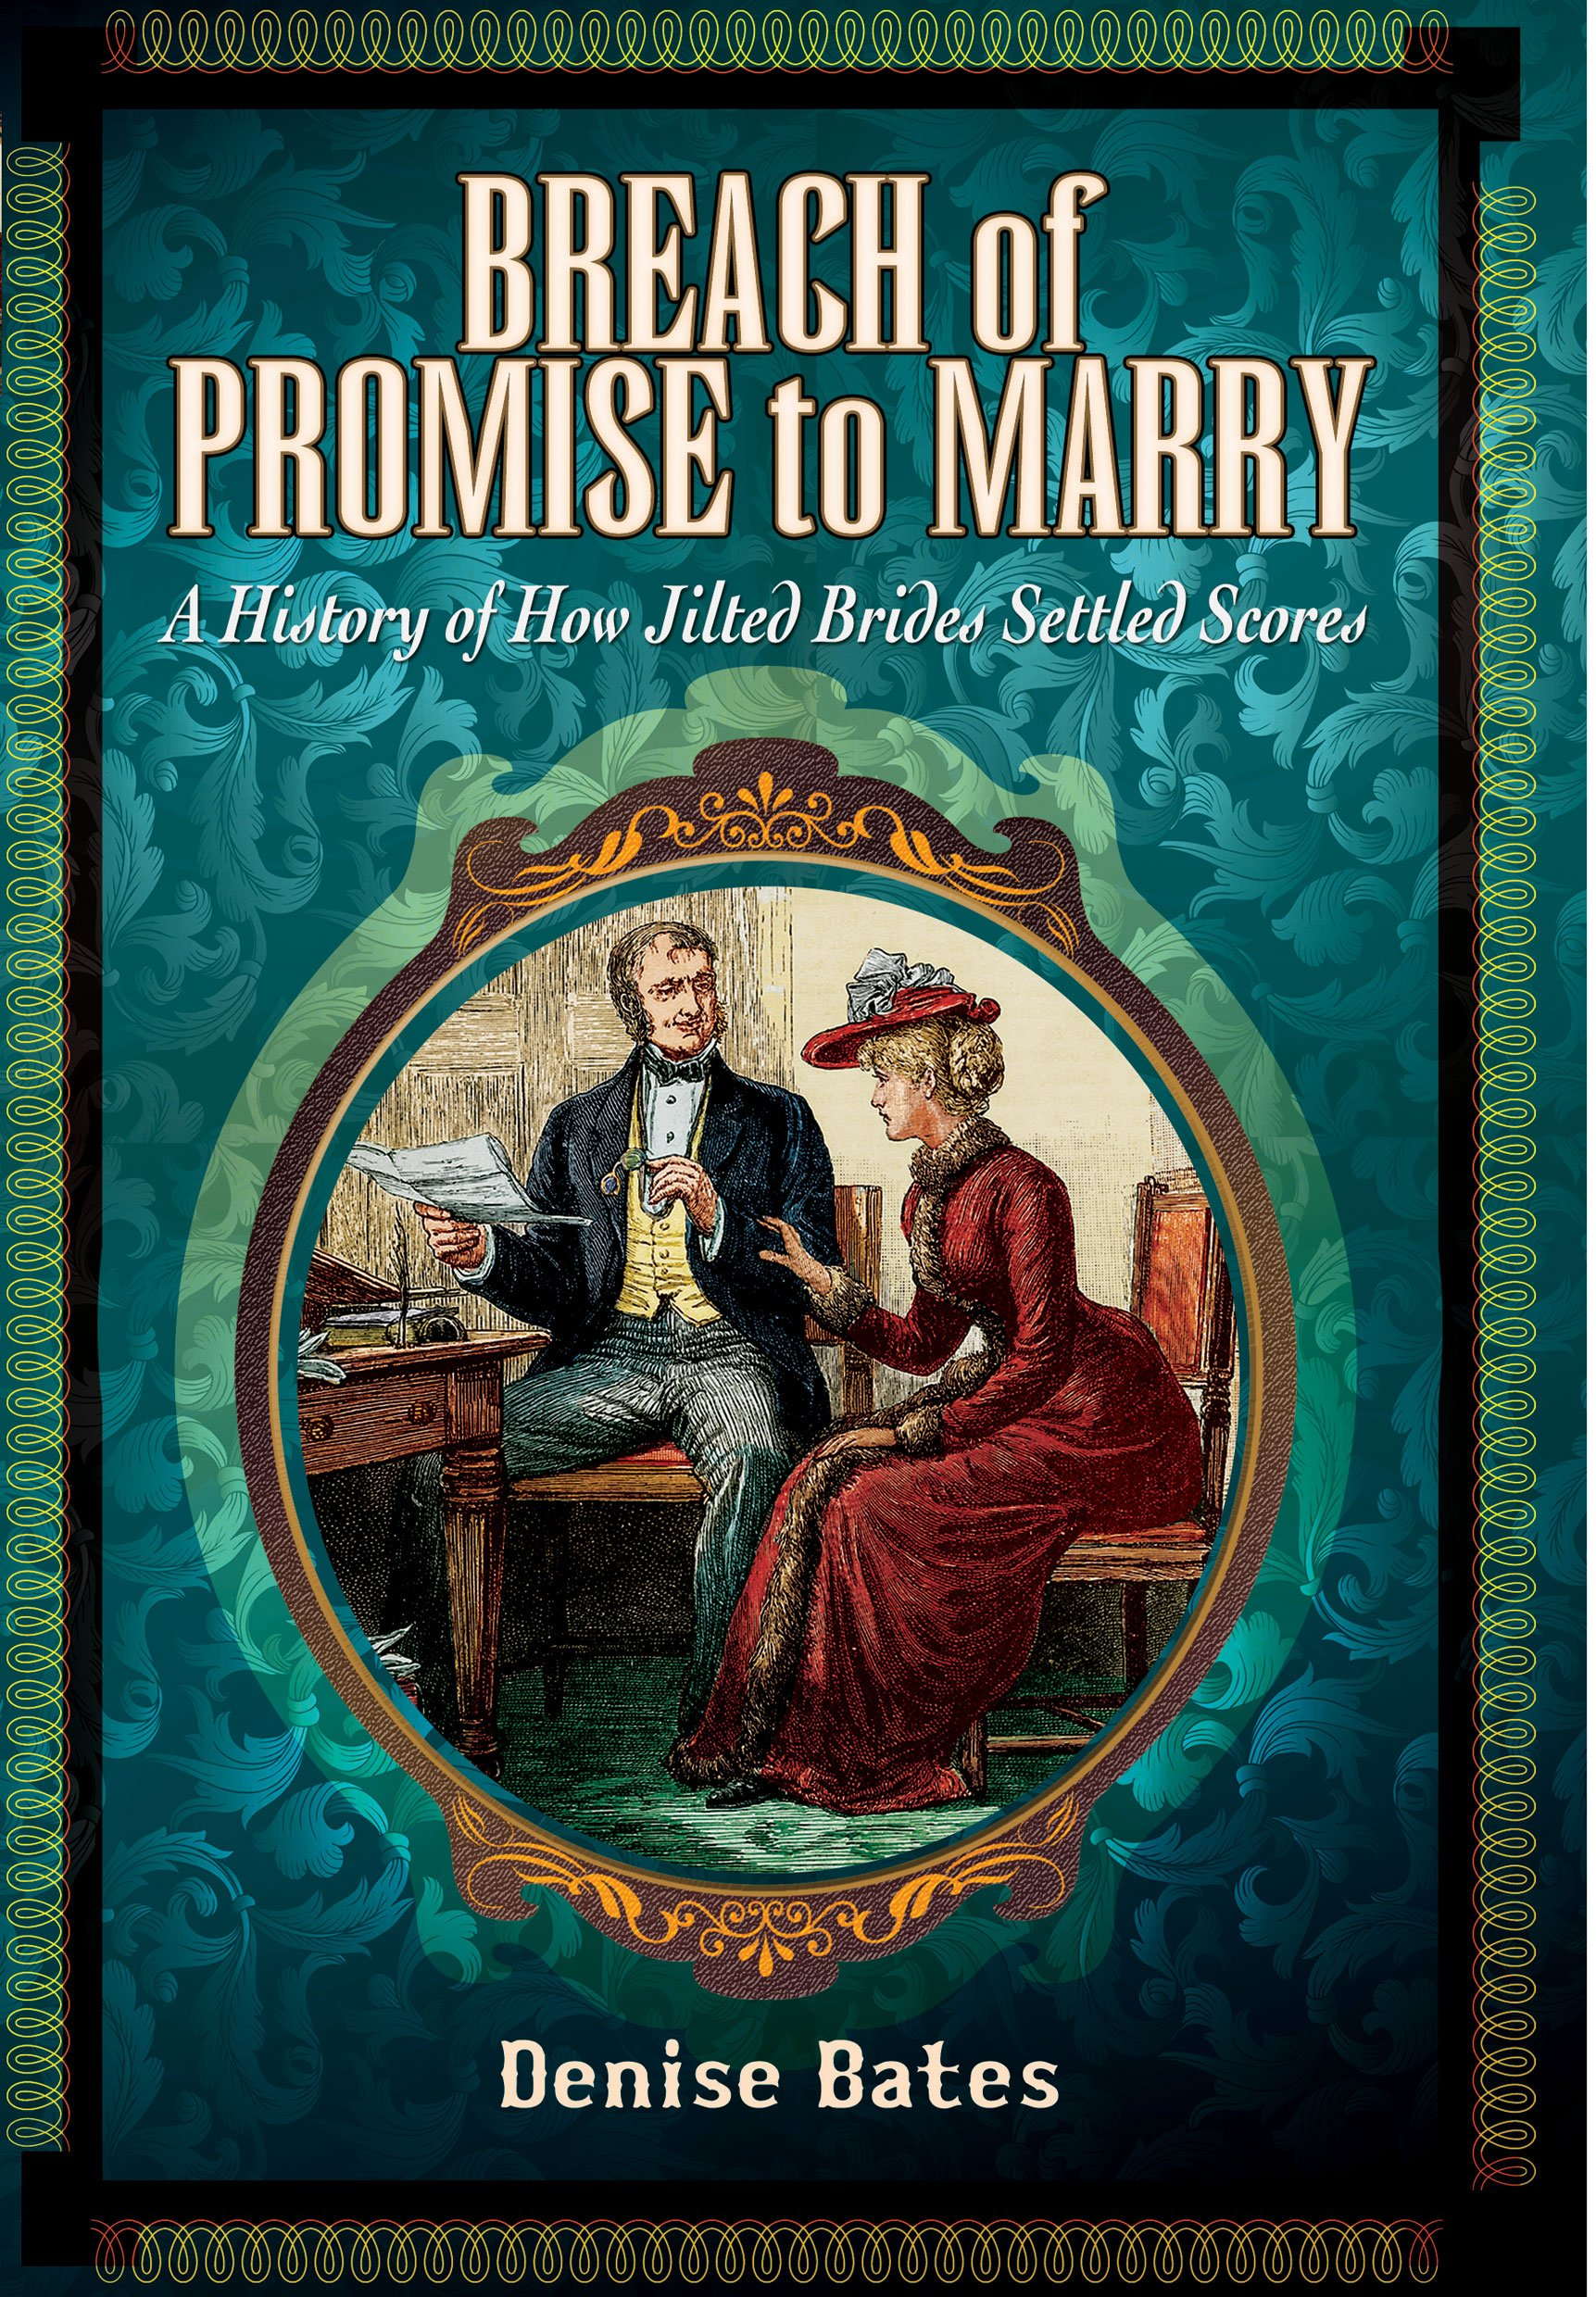 Breach of Promise to Marry: A History of How Jilted Brides Settled Scores